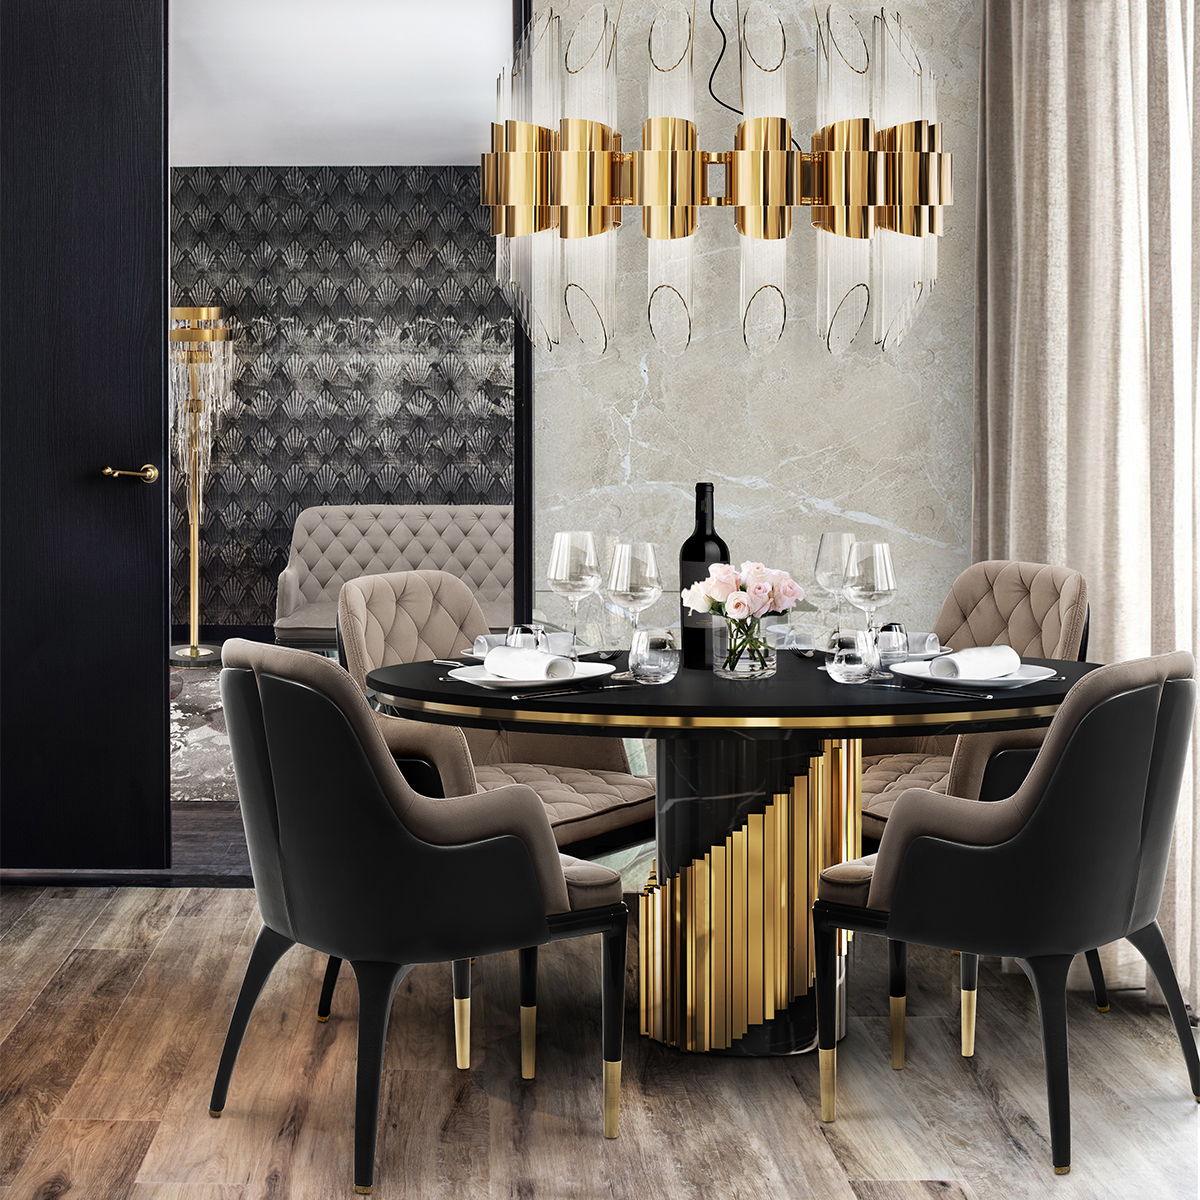 More 20 Luxury Dining Tables That Are Perfect For Your Home_12